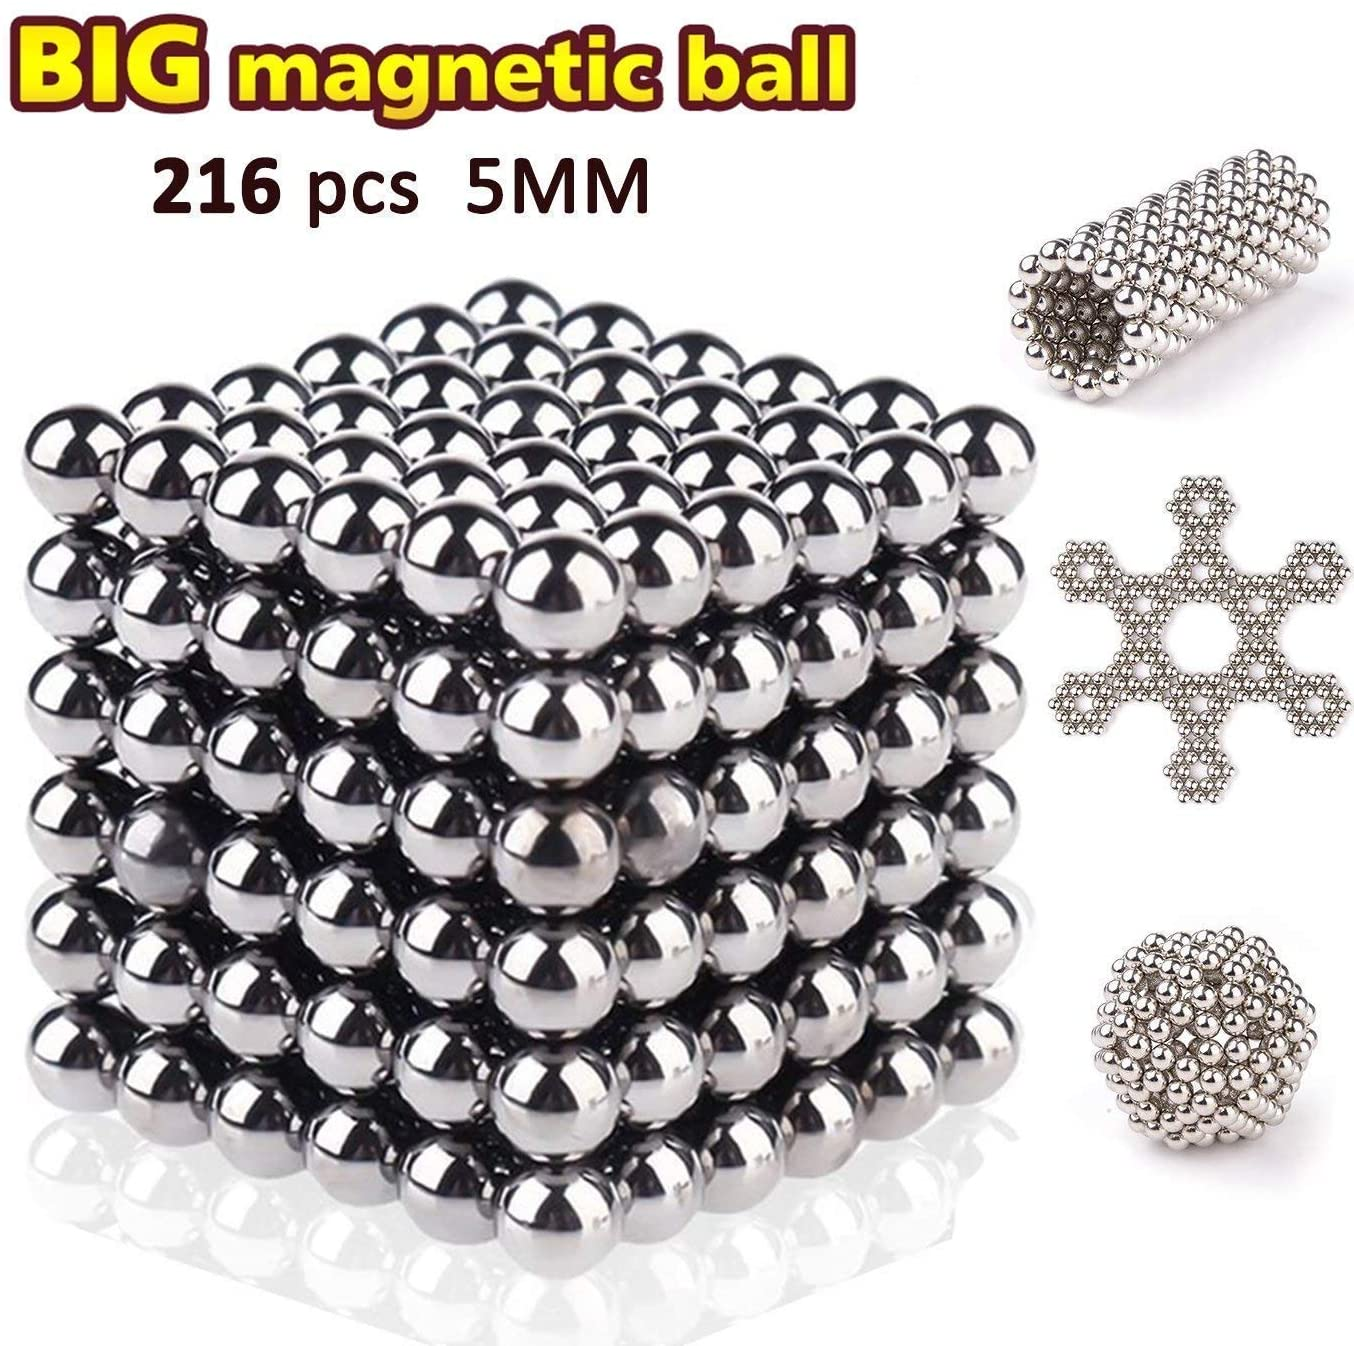 5MM Set of 216 Magnets Building Blocks Toys for Intelligence Learning Development and Creative Educational Toy, Office Desk Toy & Stress Relief for Adults (Silver)